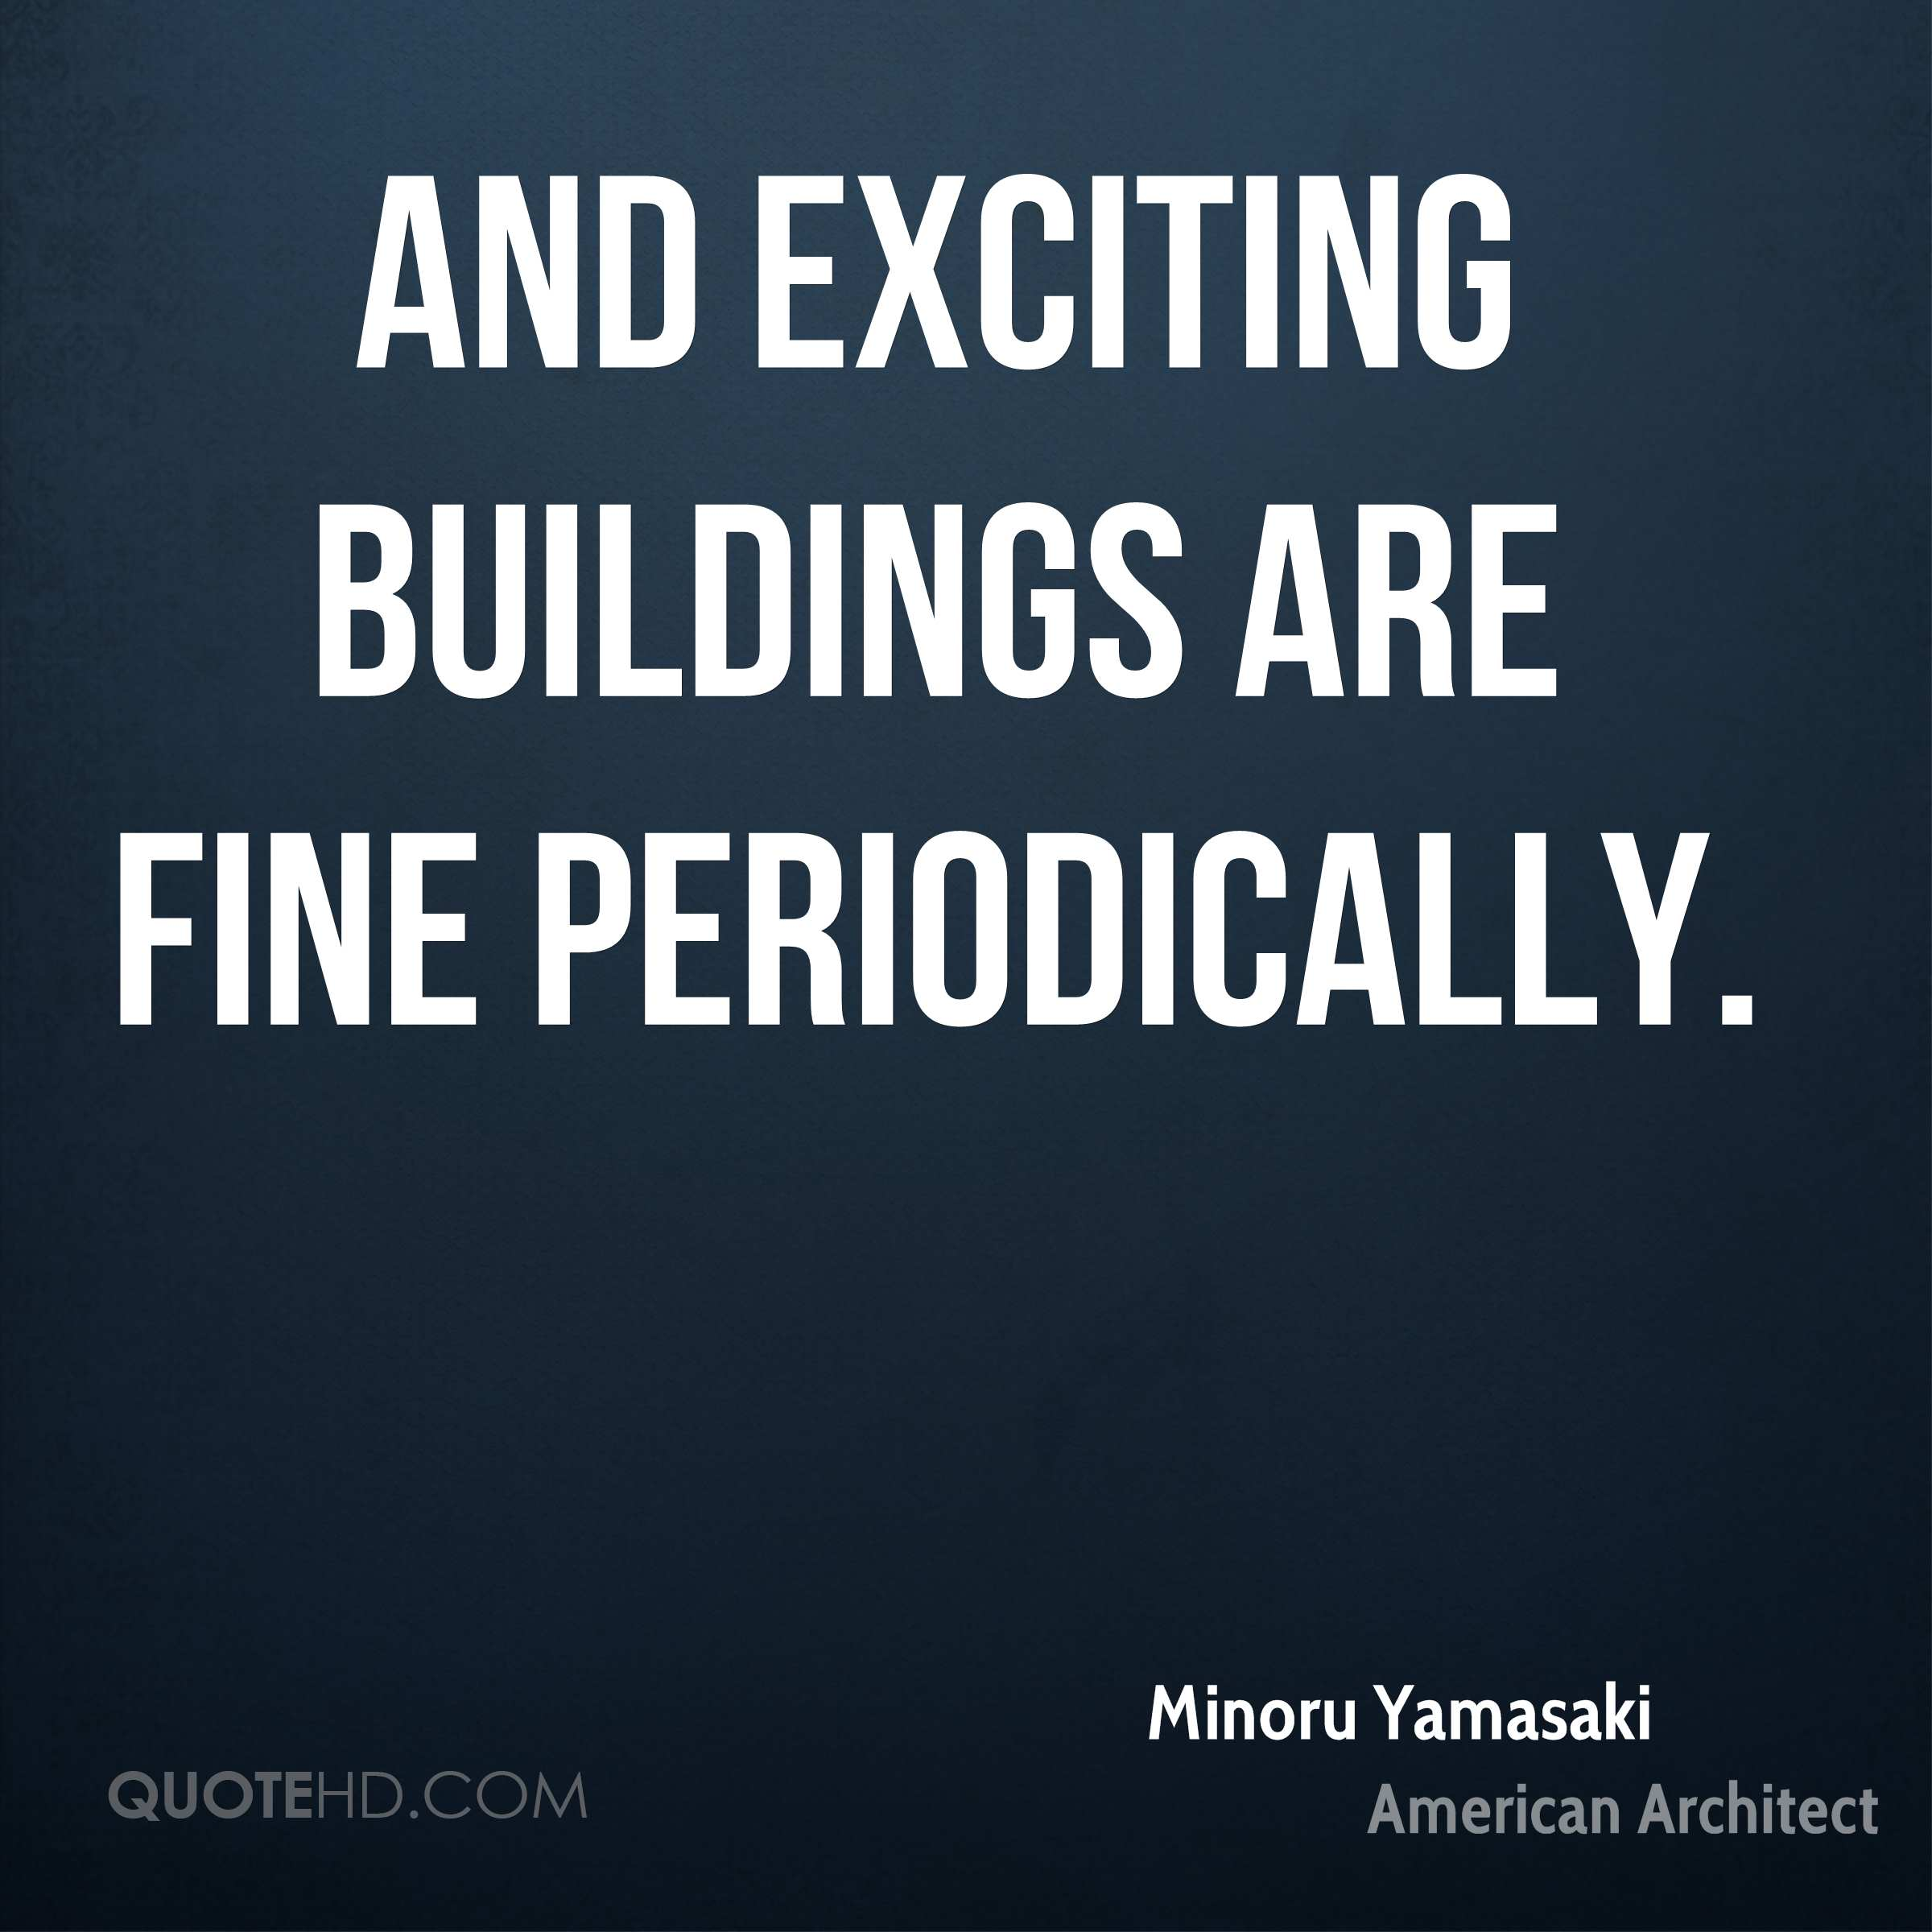 And exciting buildings are fine periodically.